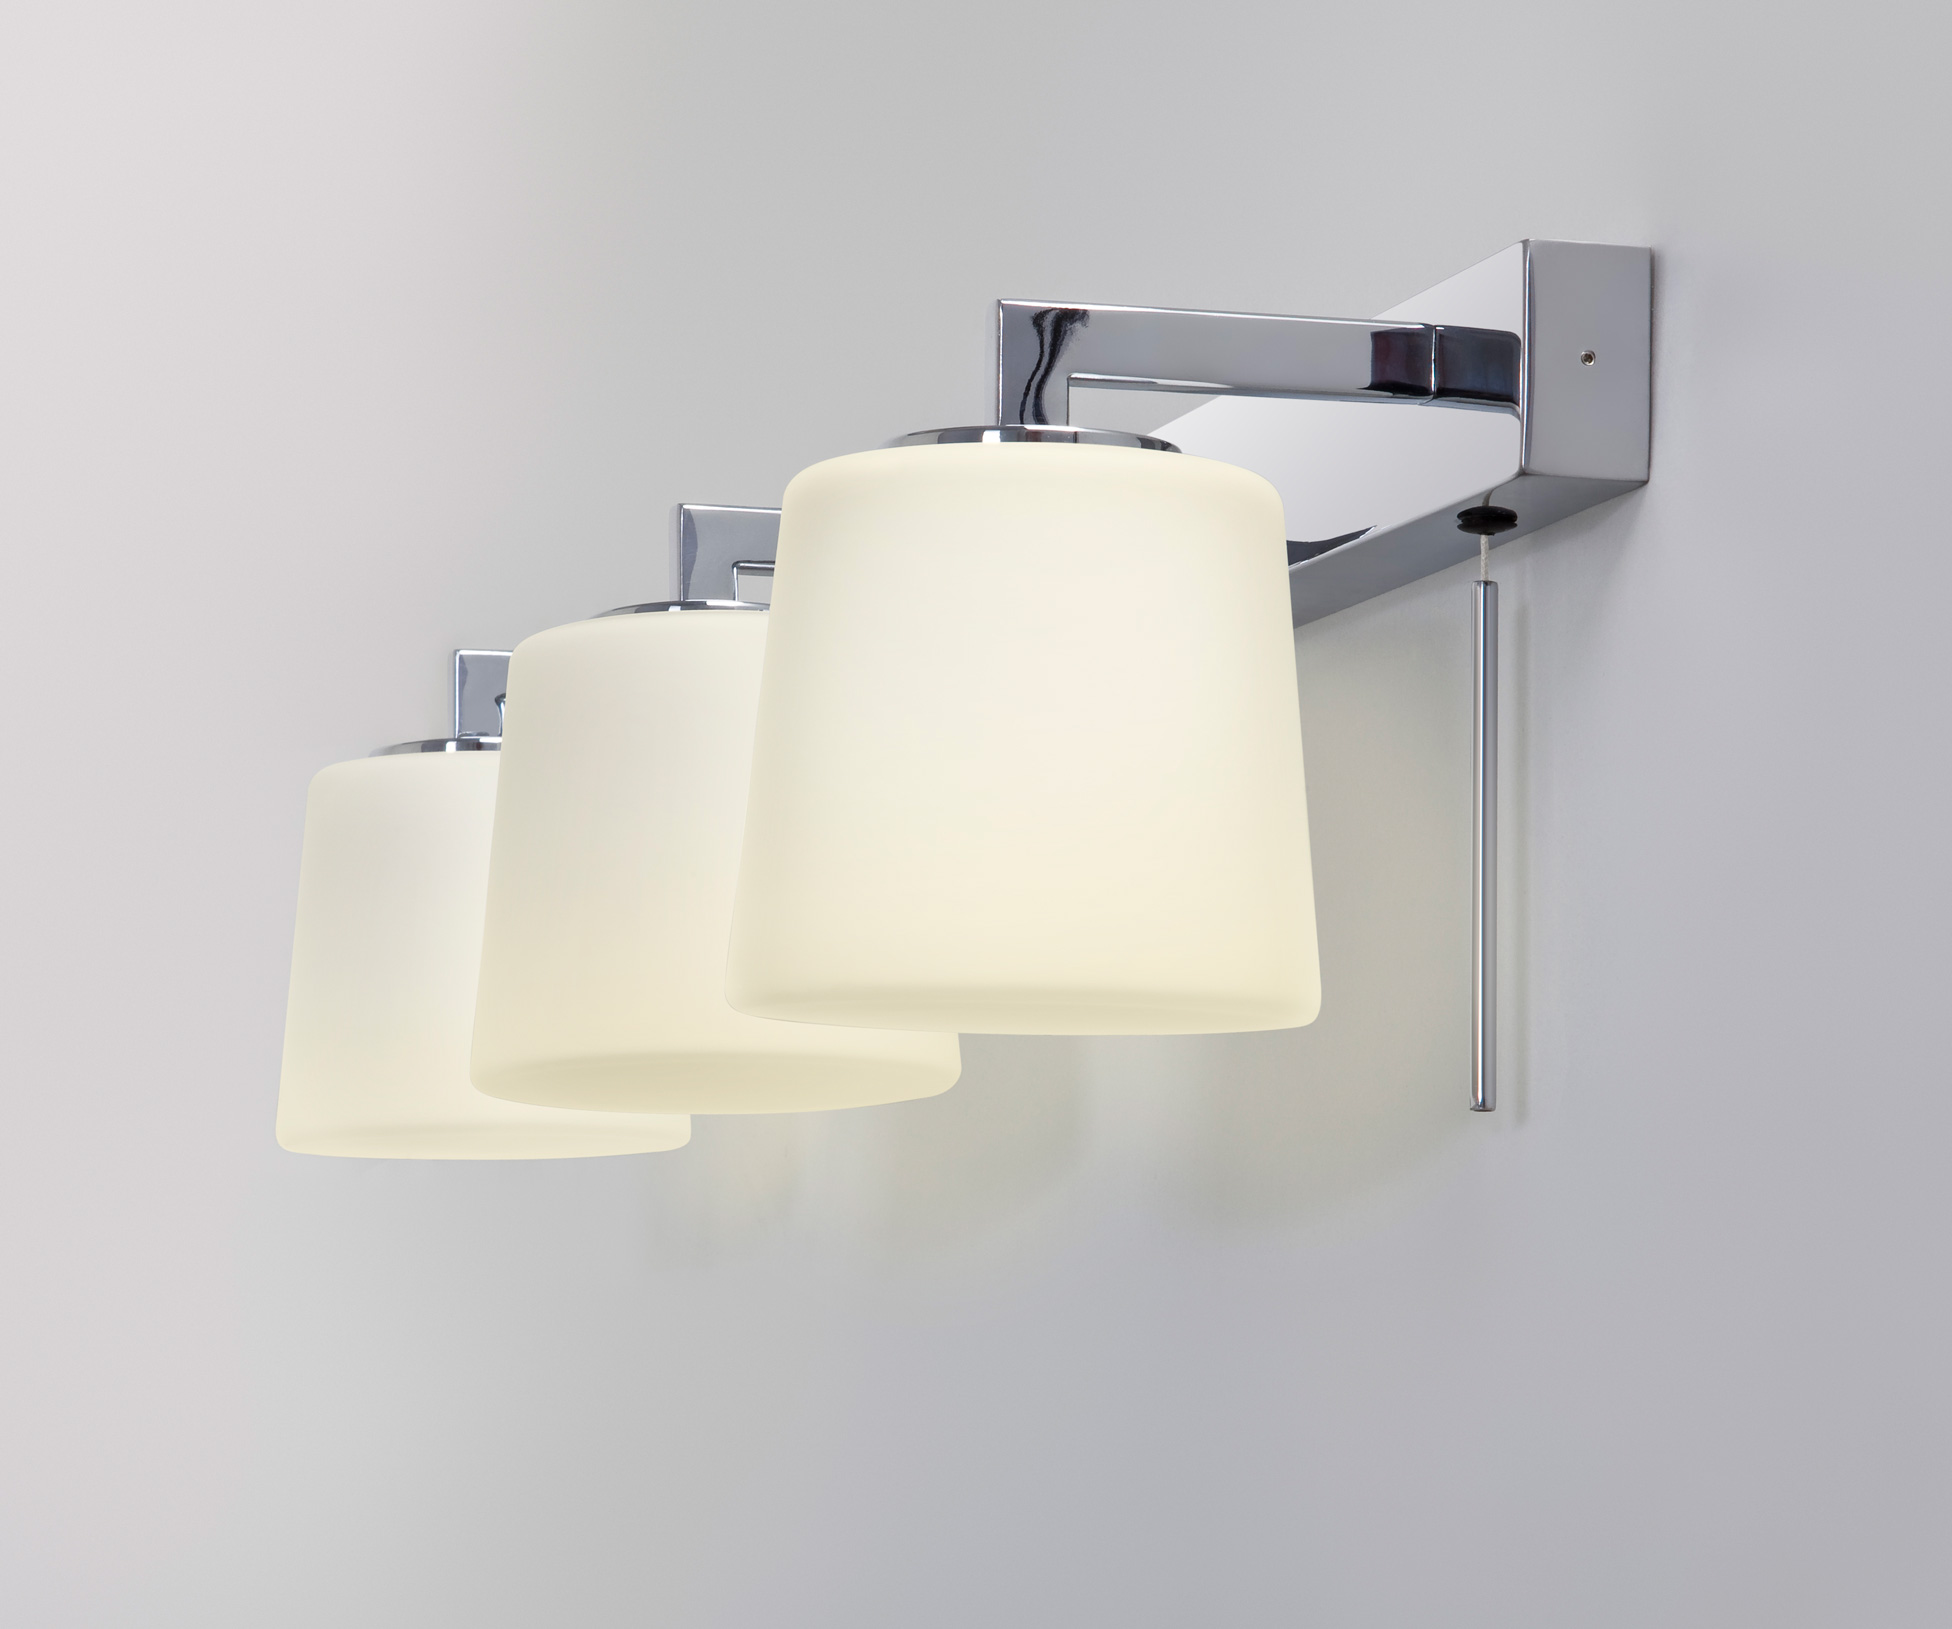 Bathroom Mirror Wall Lights Details About Astro Triplex Bathroom Mirror Wall Light 3 X 40w G9 Switch Chrome